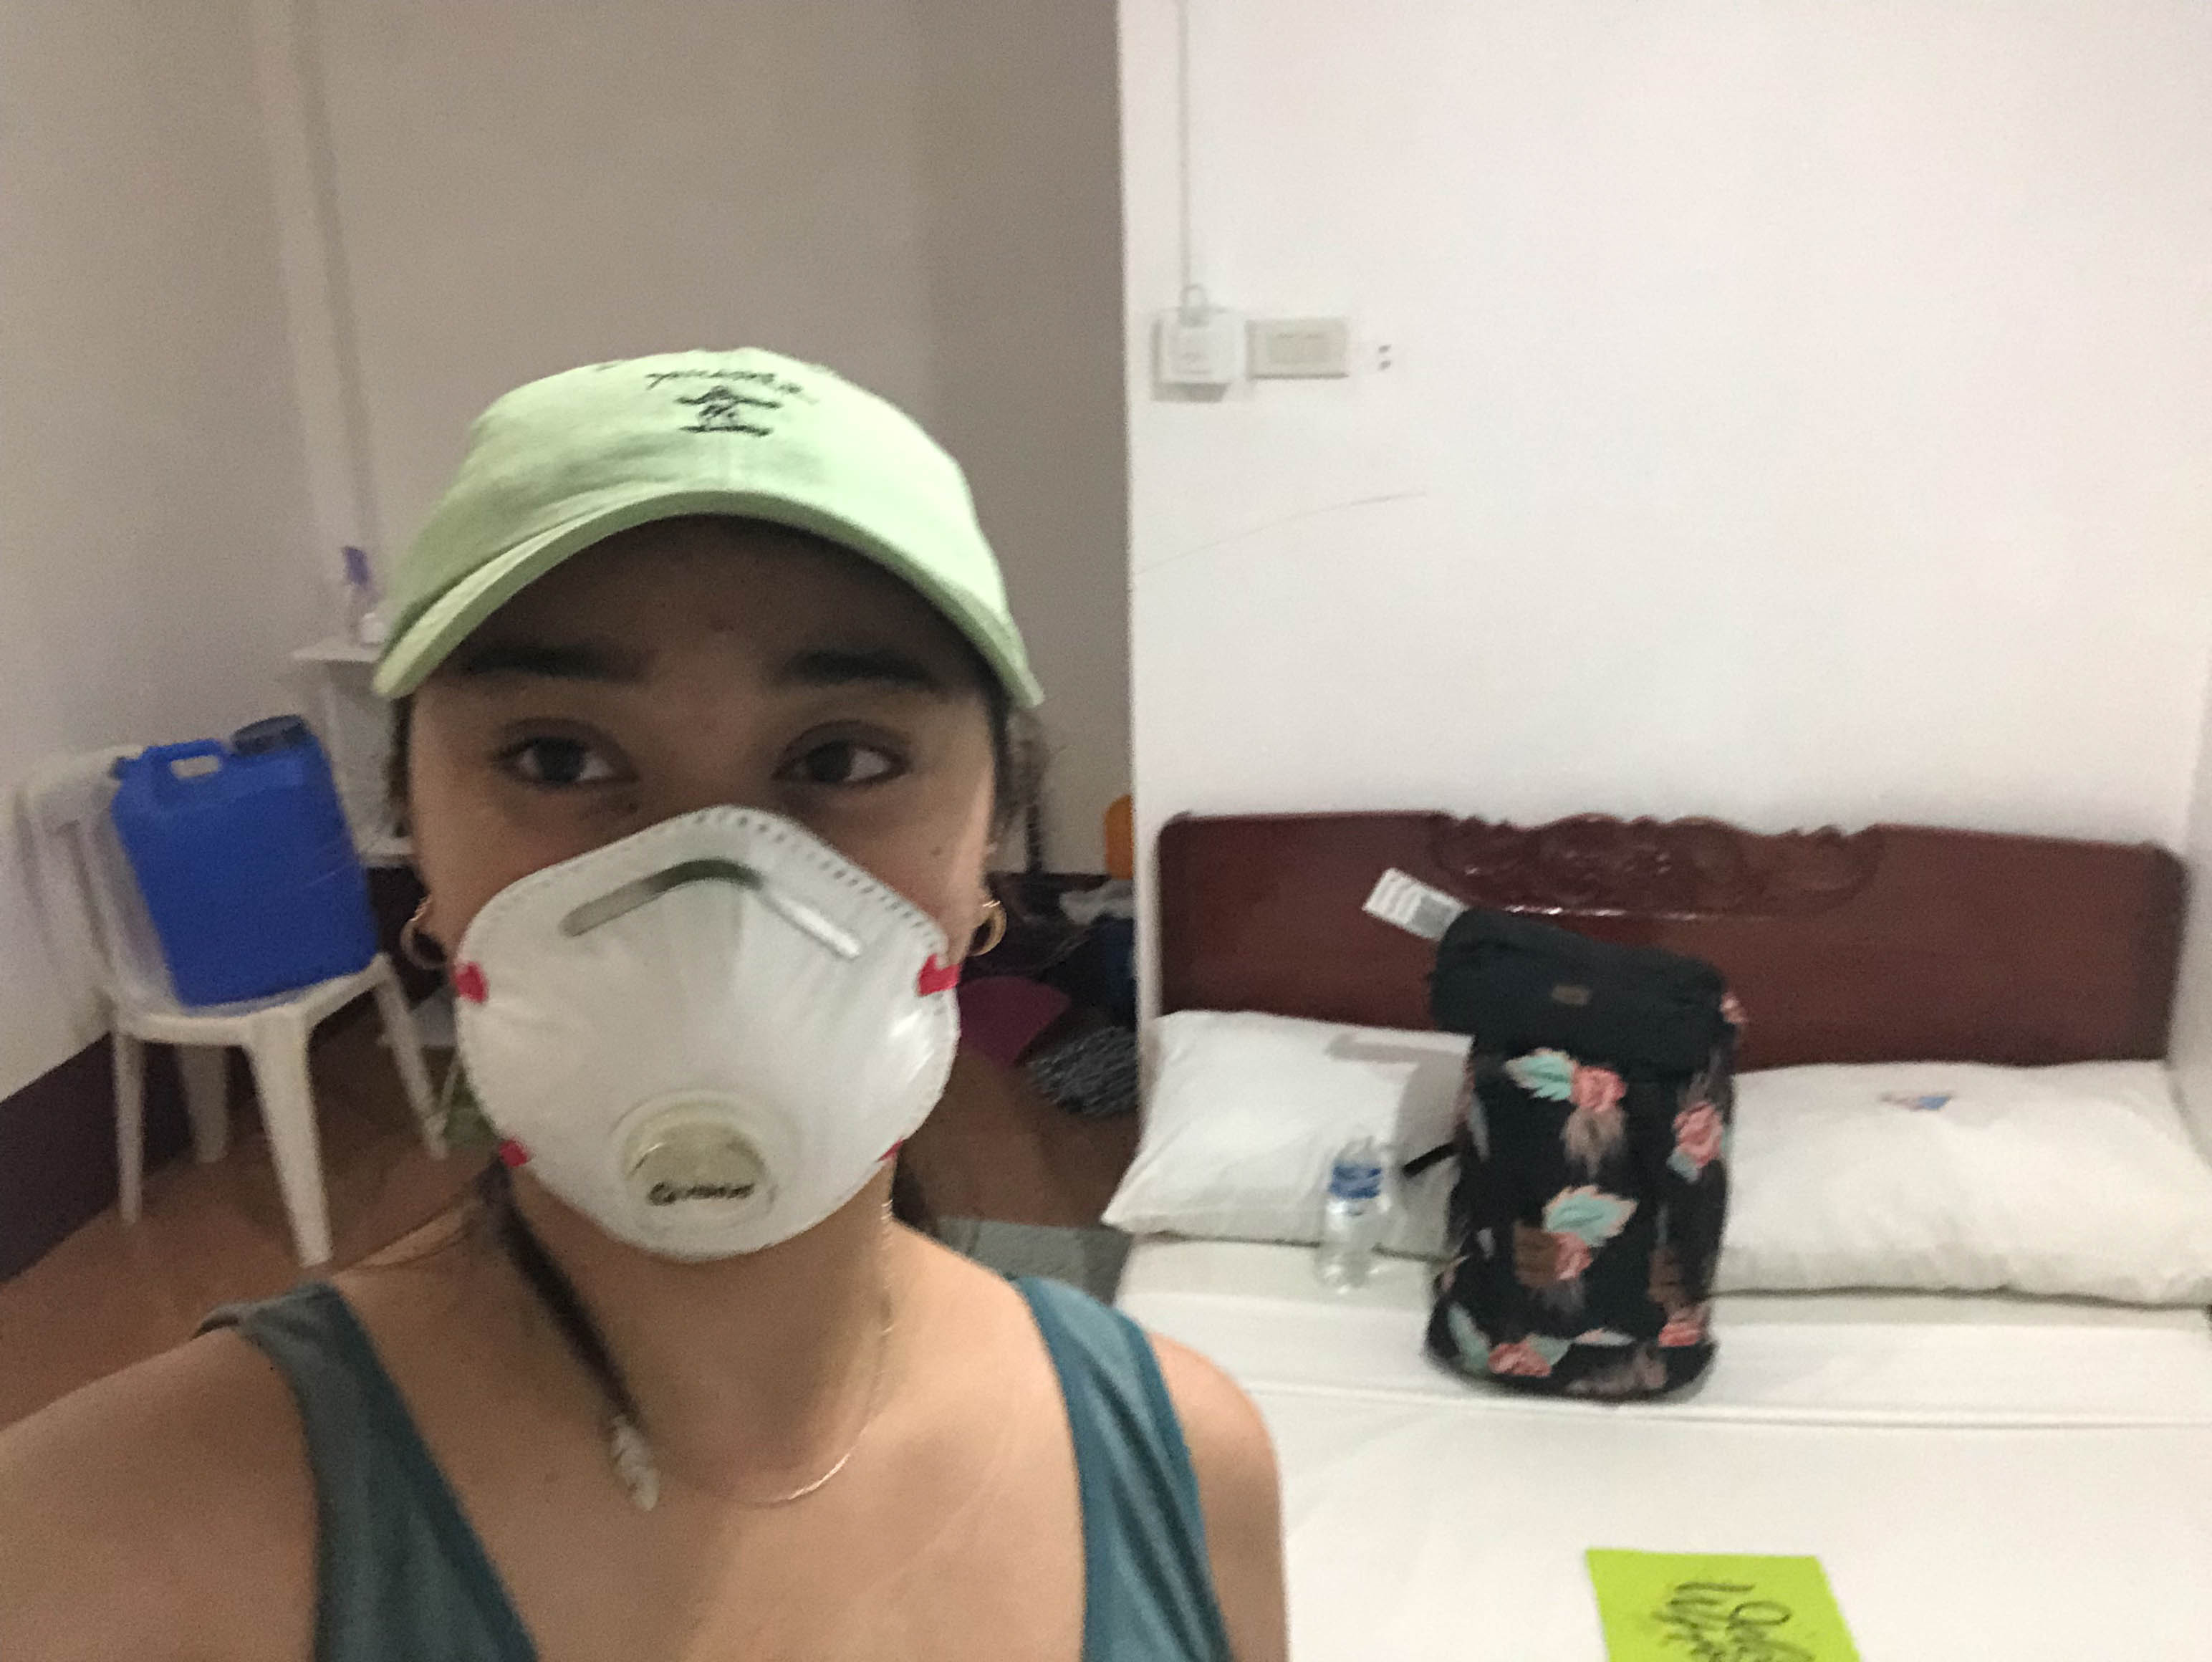 COOPED UP. Krisa Joy Mangilog spends nearly a month in a windowless room in a Quezon City motel. When she arrives in Ibajay, Aklan, she is again placed in quarantine for another 14 days in this room at a beach resort. Photo courtesy of Mangilog